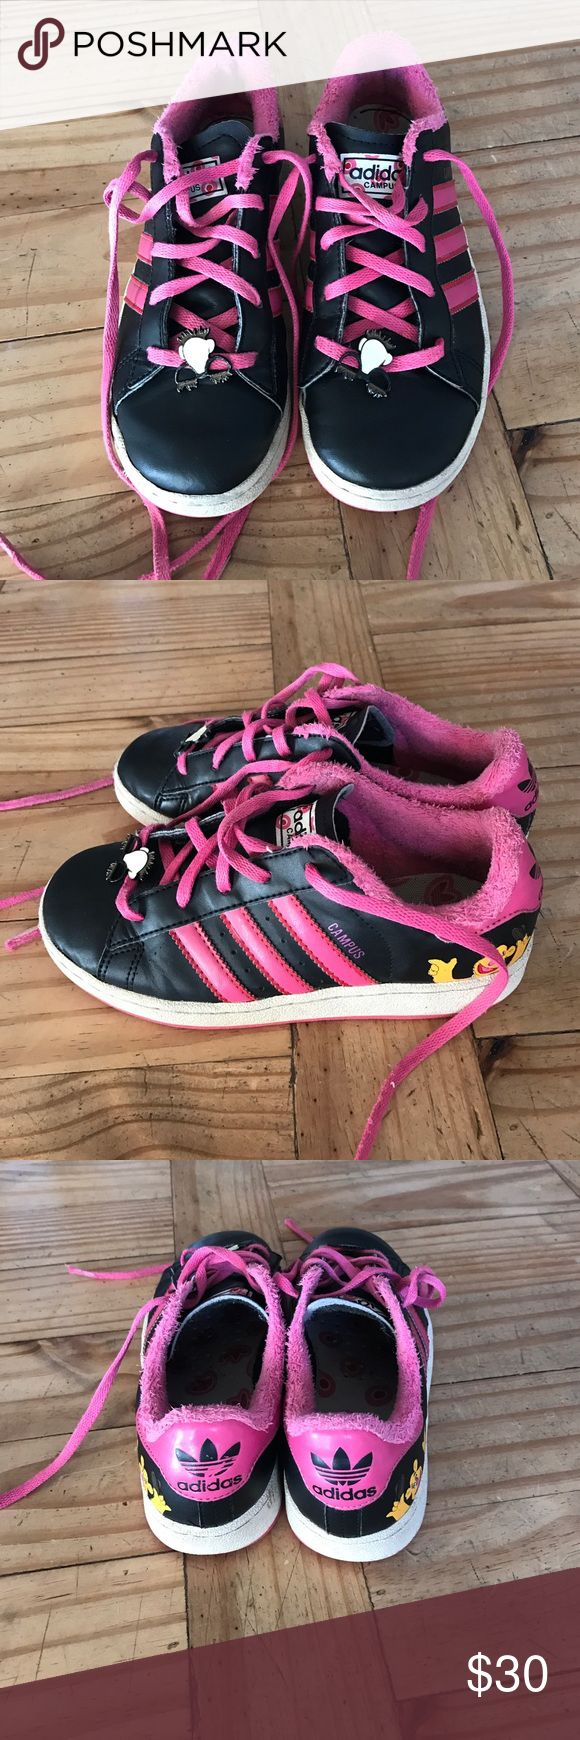 Adidas Campus shoes pink muppets Super cute sneakers Adidas Shoes Sneakers